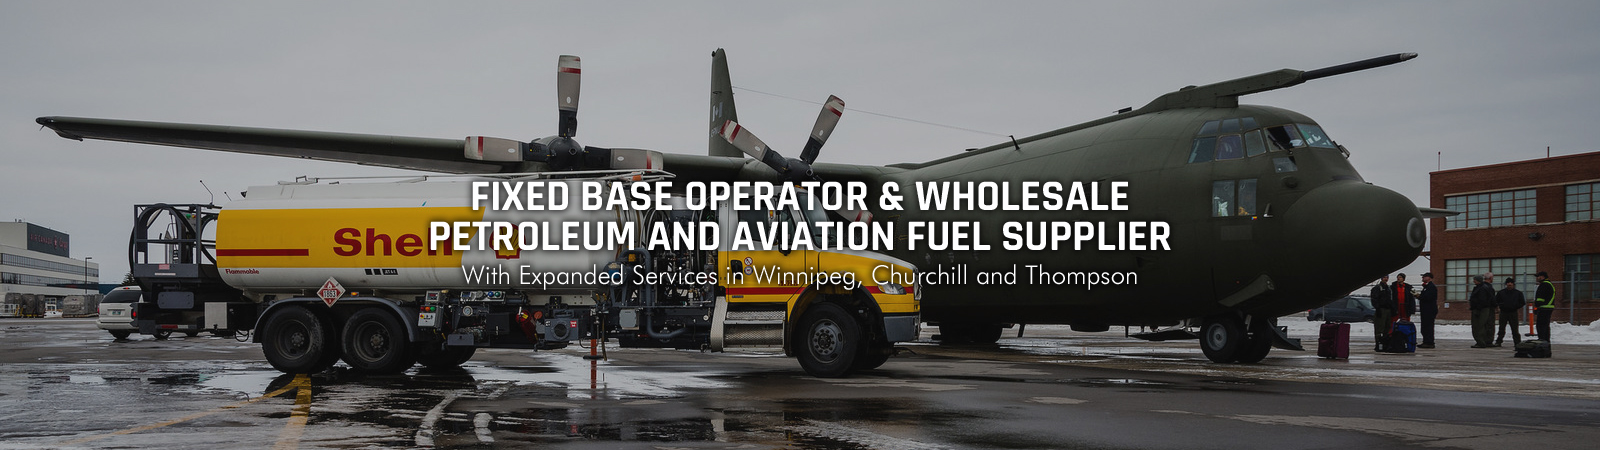 Fixed Base Operator & wholesale petroleum and aviation fuel supplier